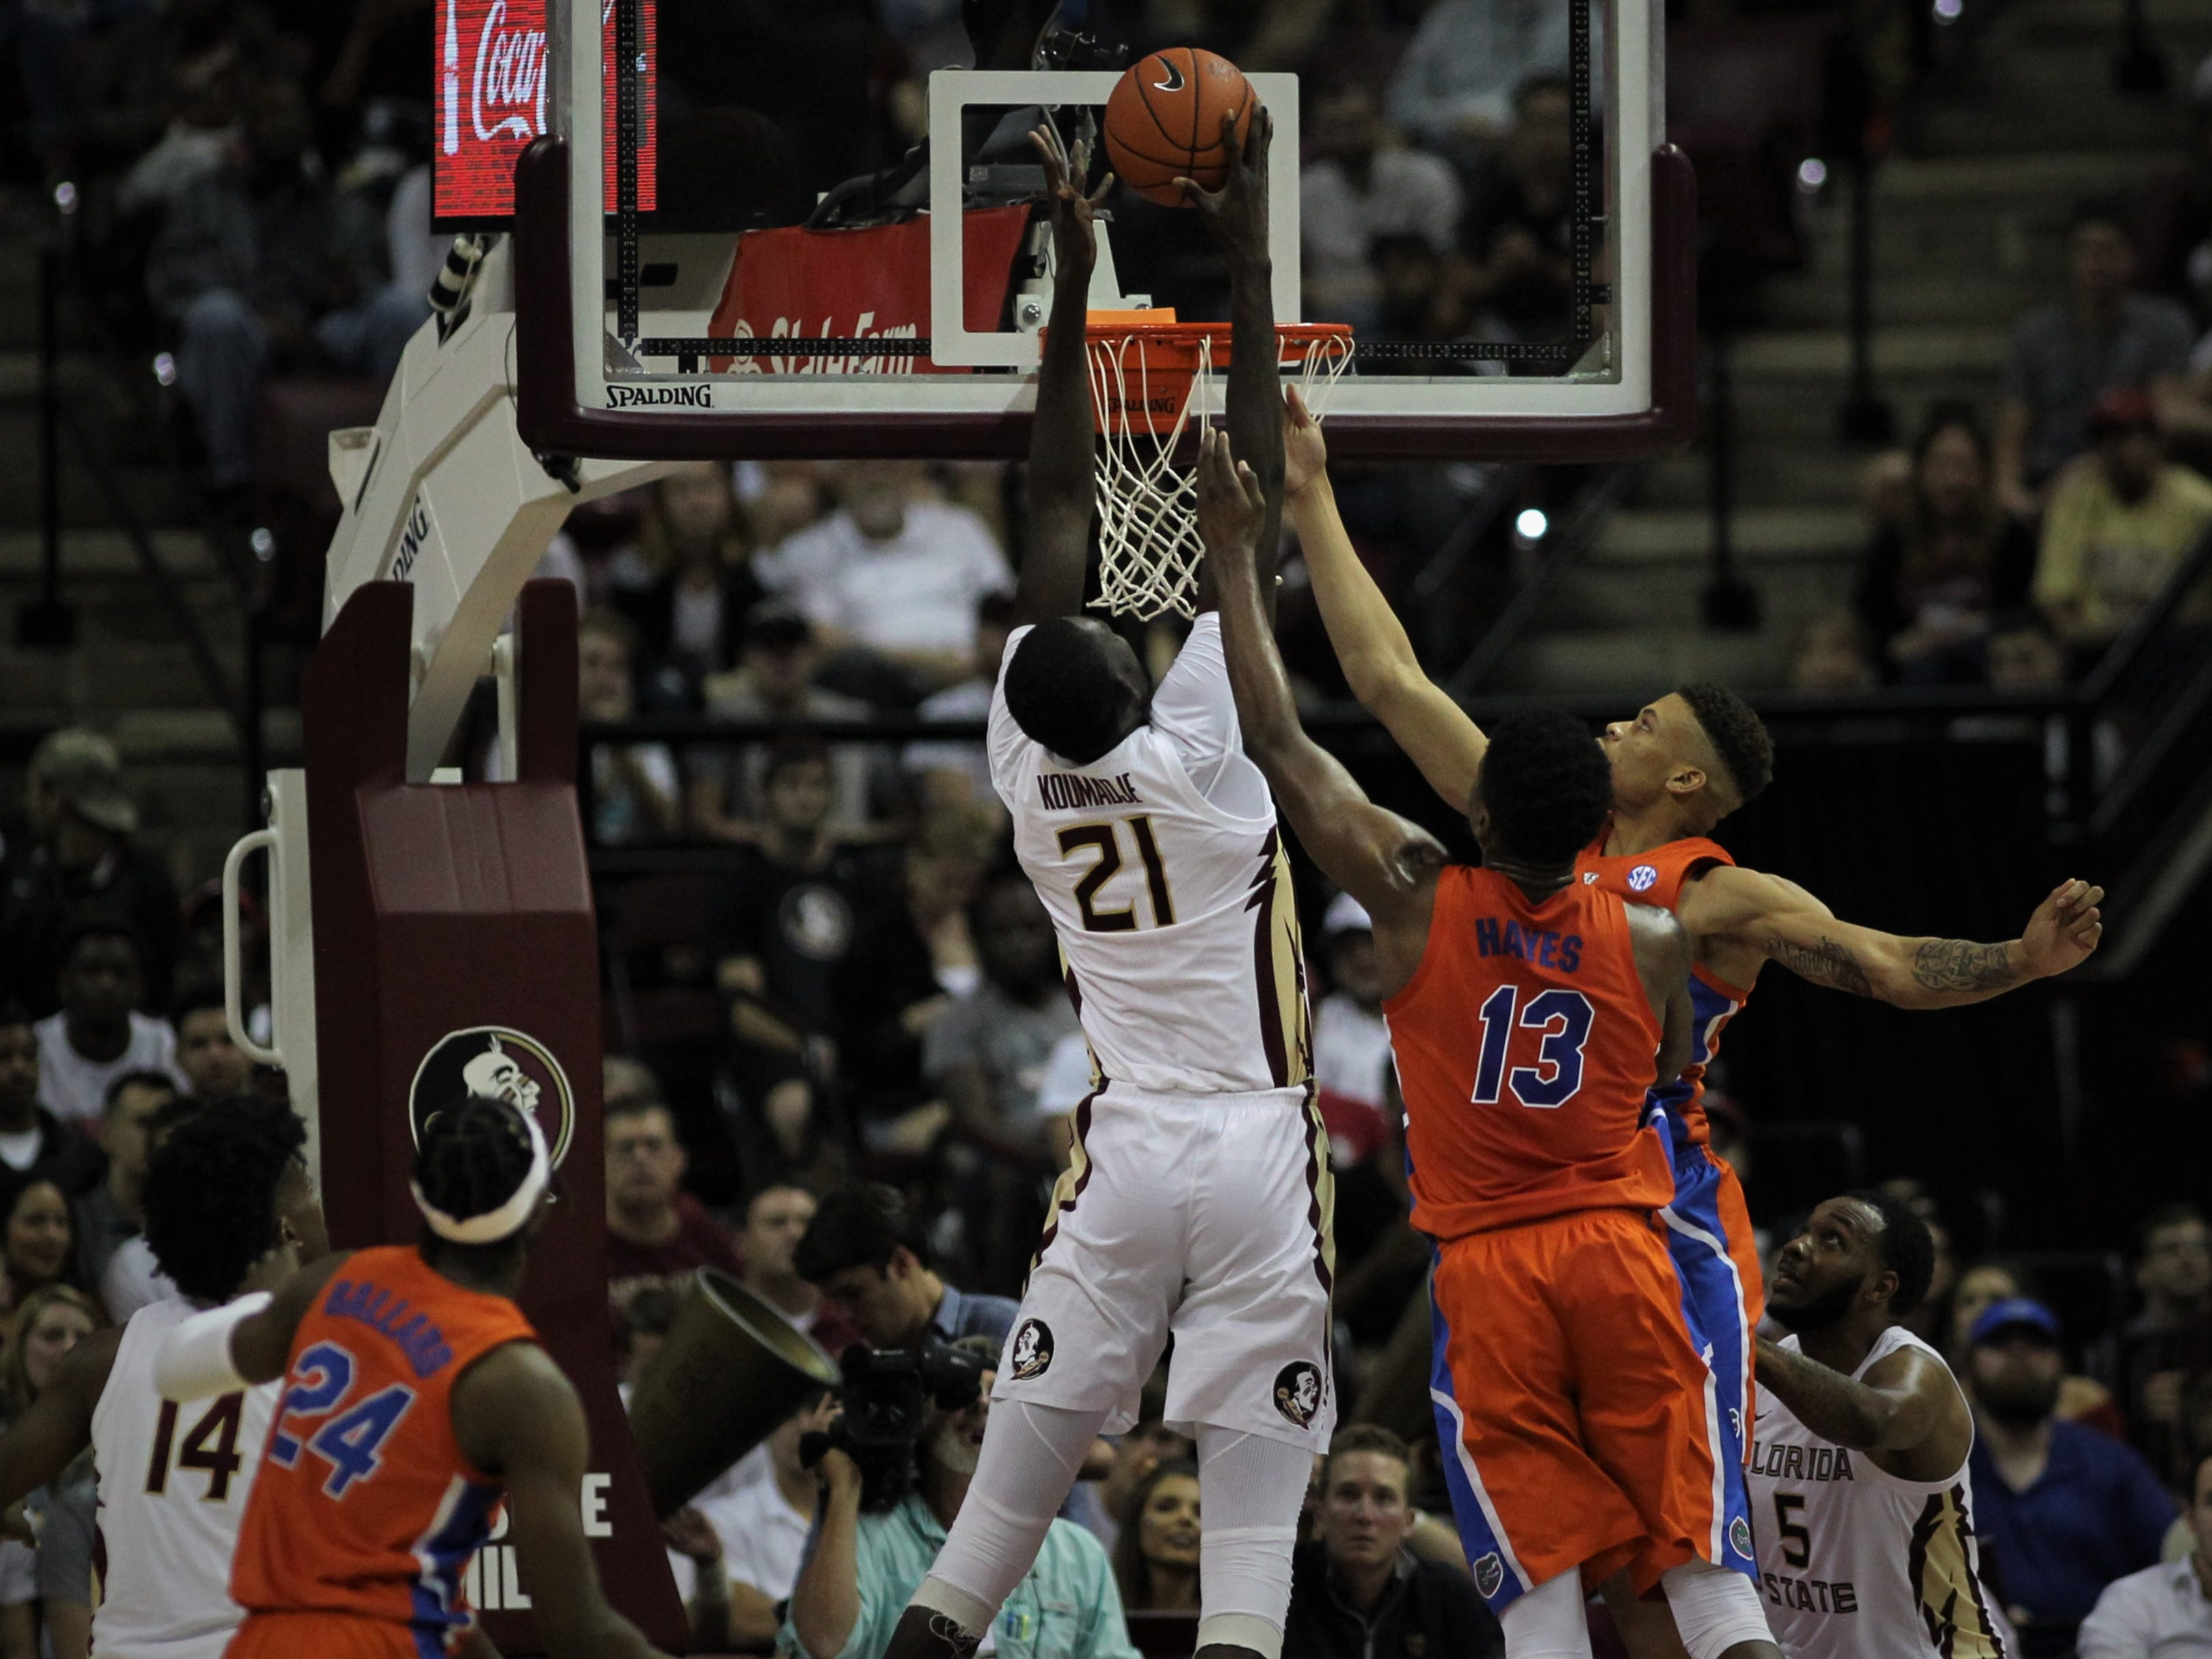 Florida State center Christ Koumadje goes up for a rebound during the Sunshine Showdown game against Florida on Tuesday at the Tucker Civic Center.